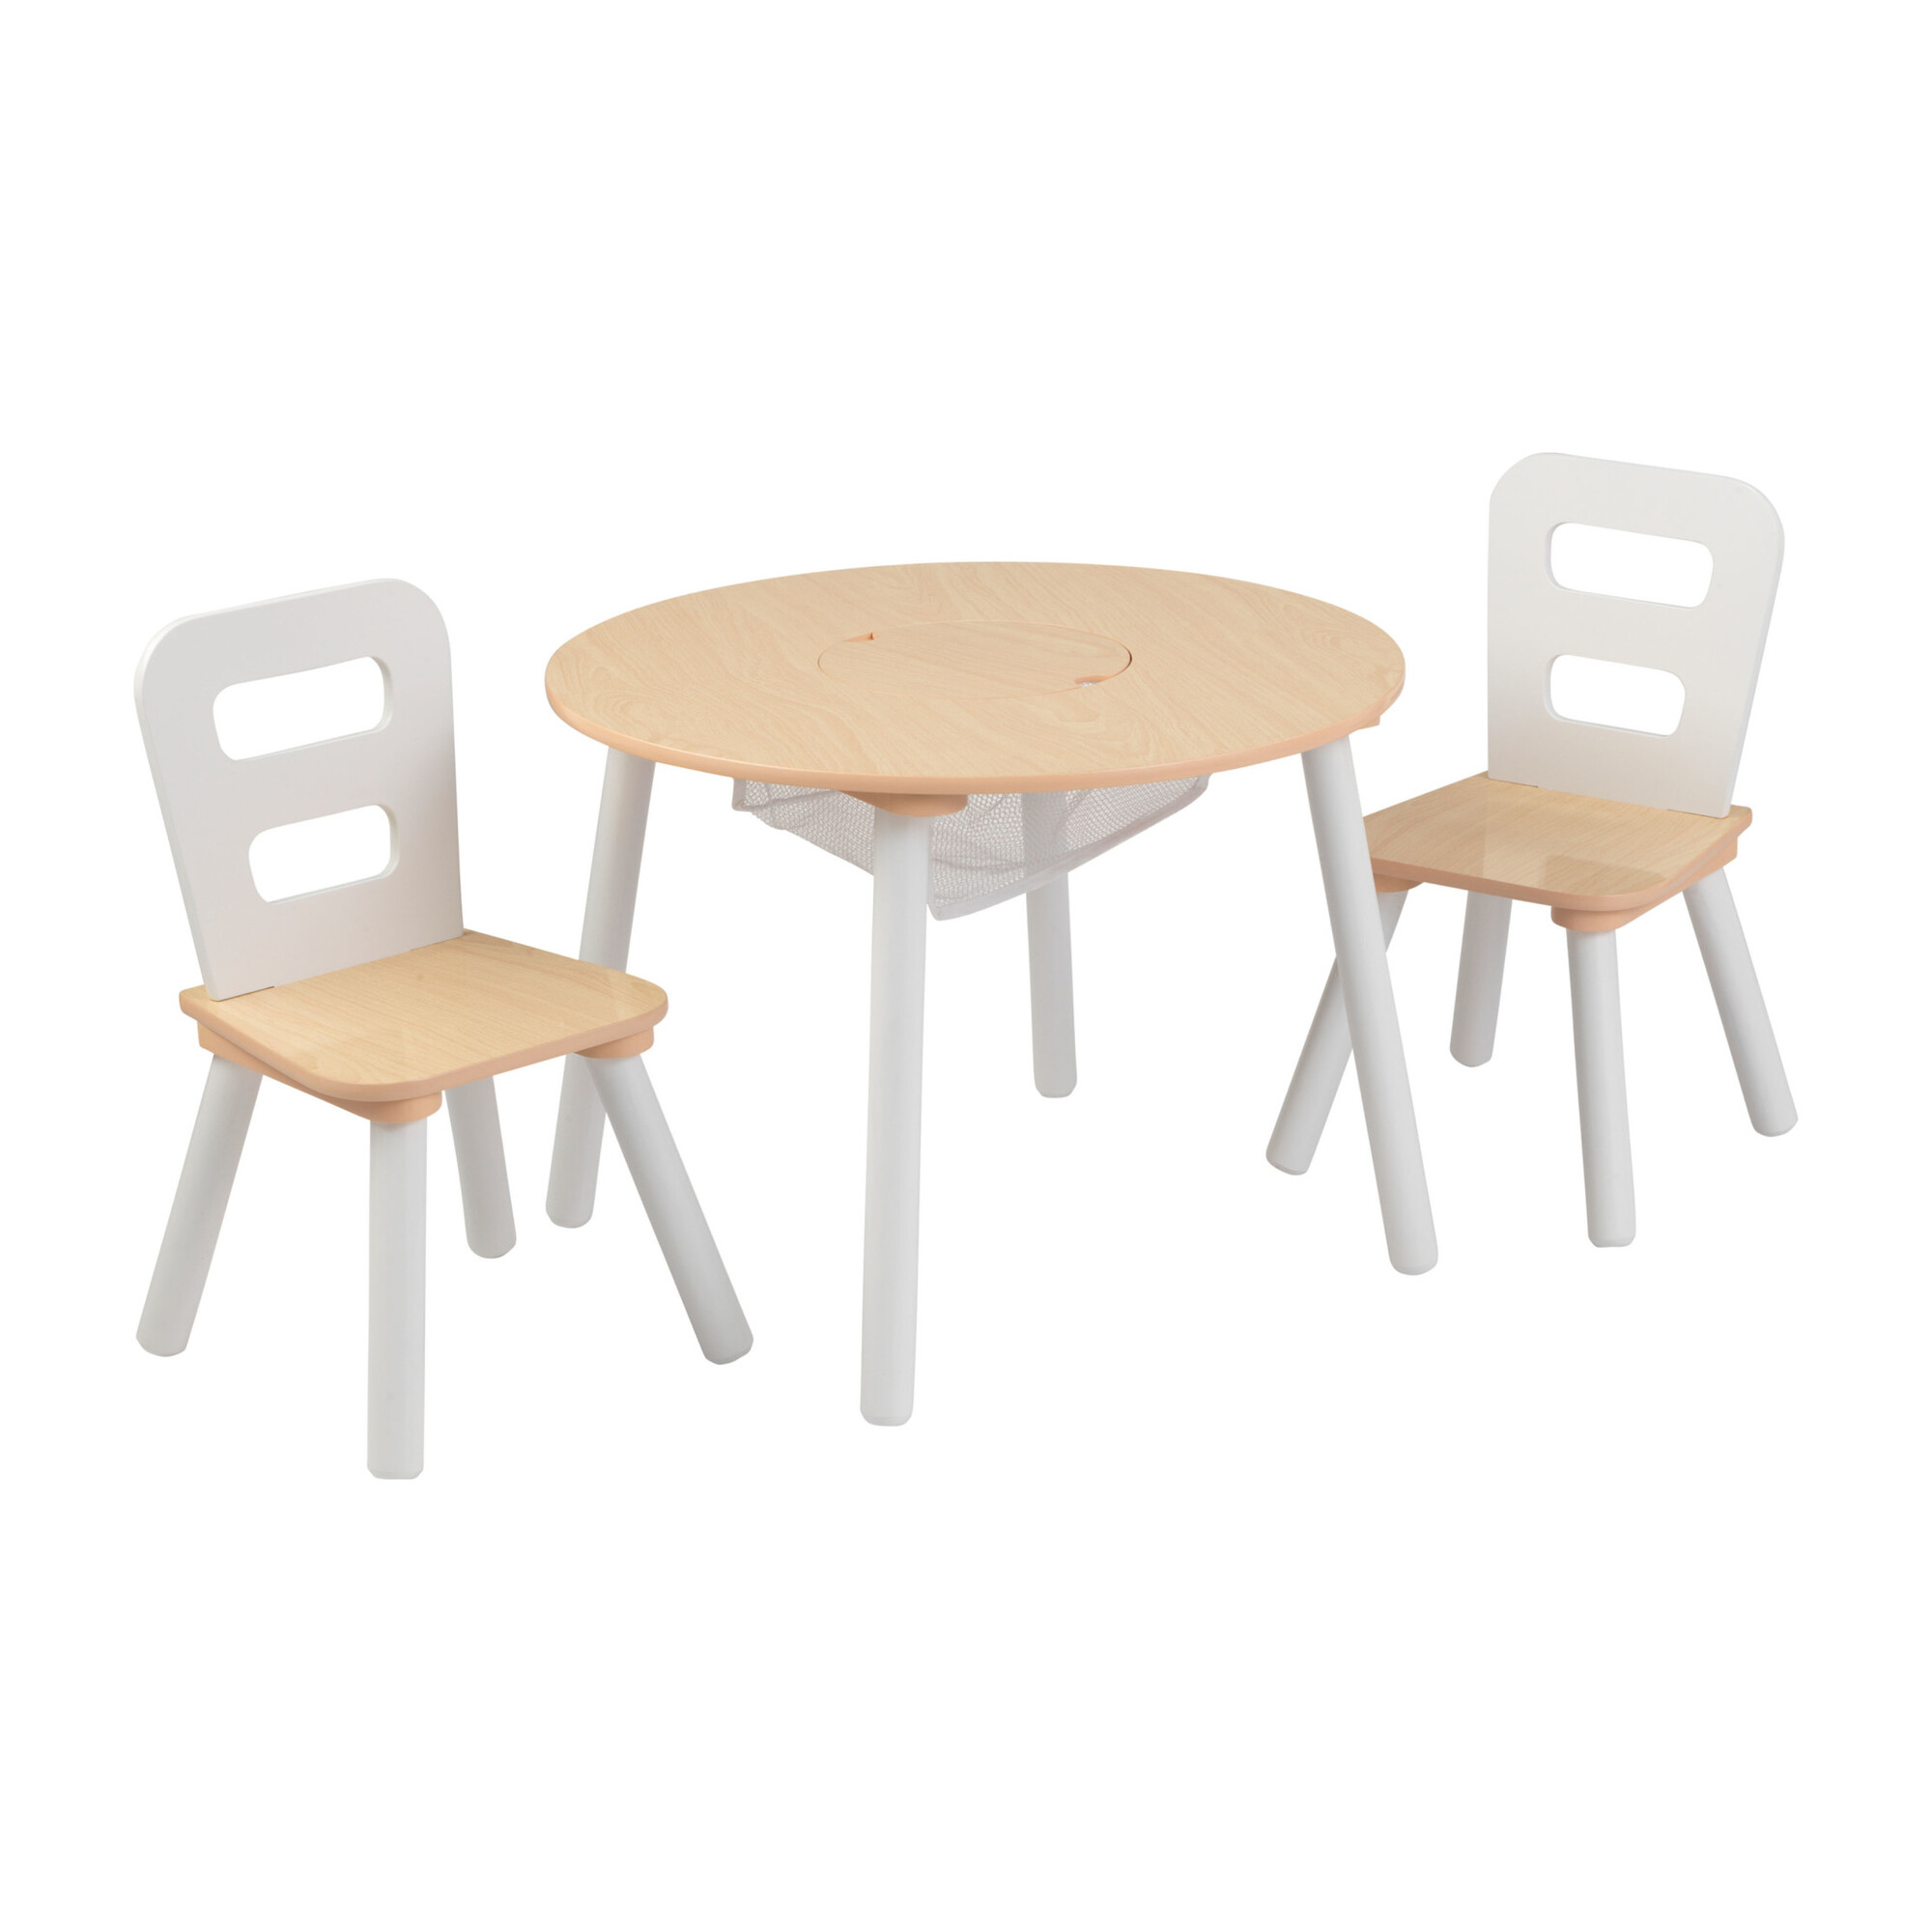 Round Storage Table And 2 Chair Set Natural White Home Furniture Kids Seating Maisonette